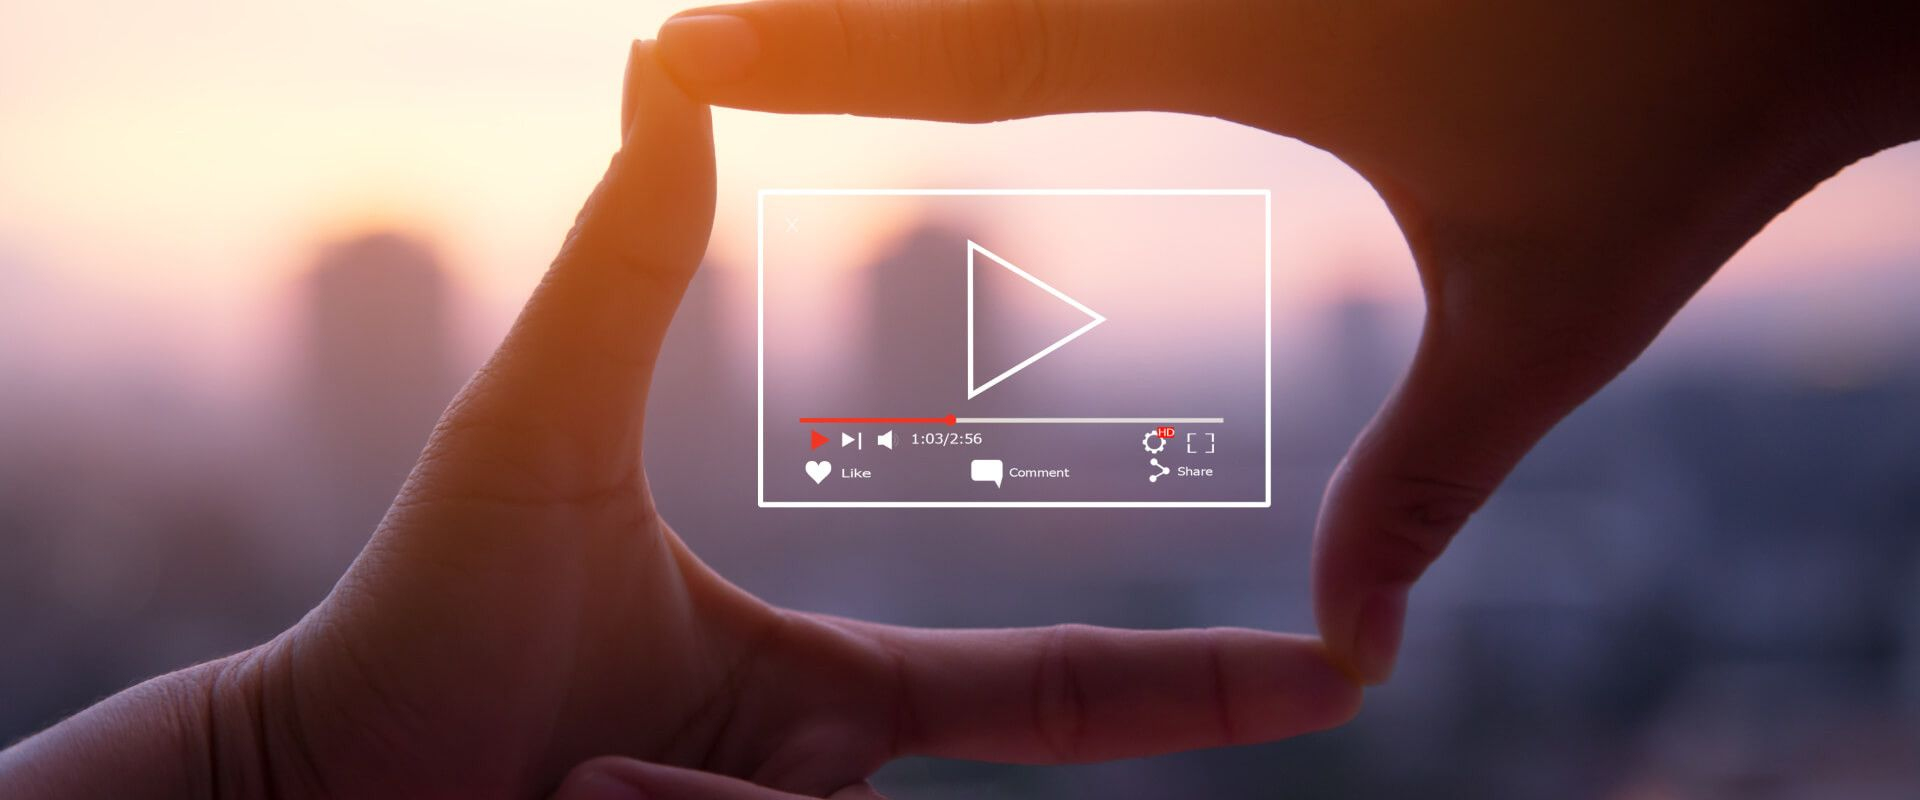 2021 and the Key Role of Video Marketing! Article by Digital Marketing Institute.